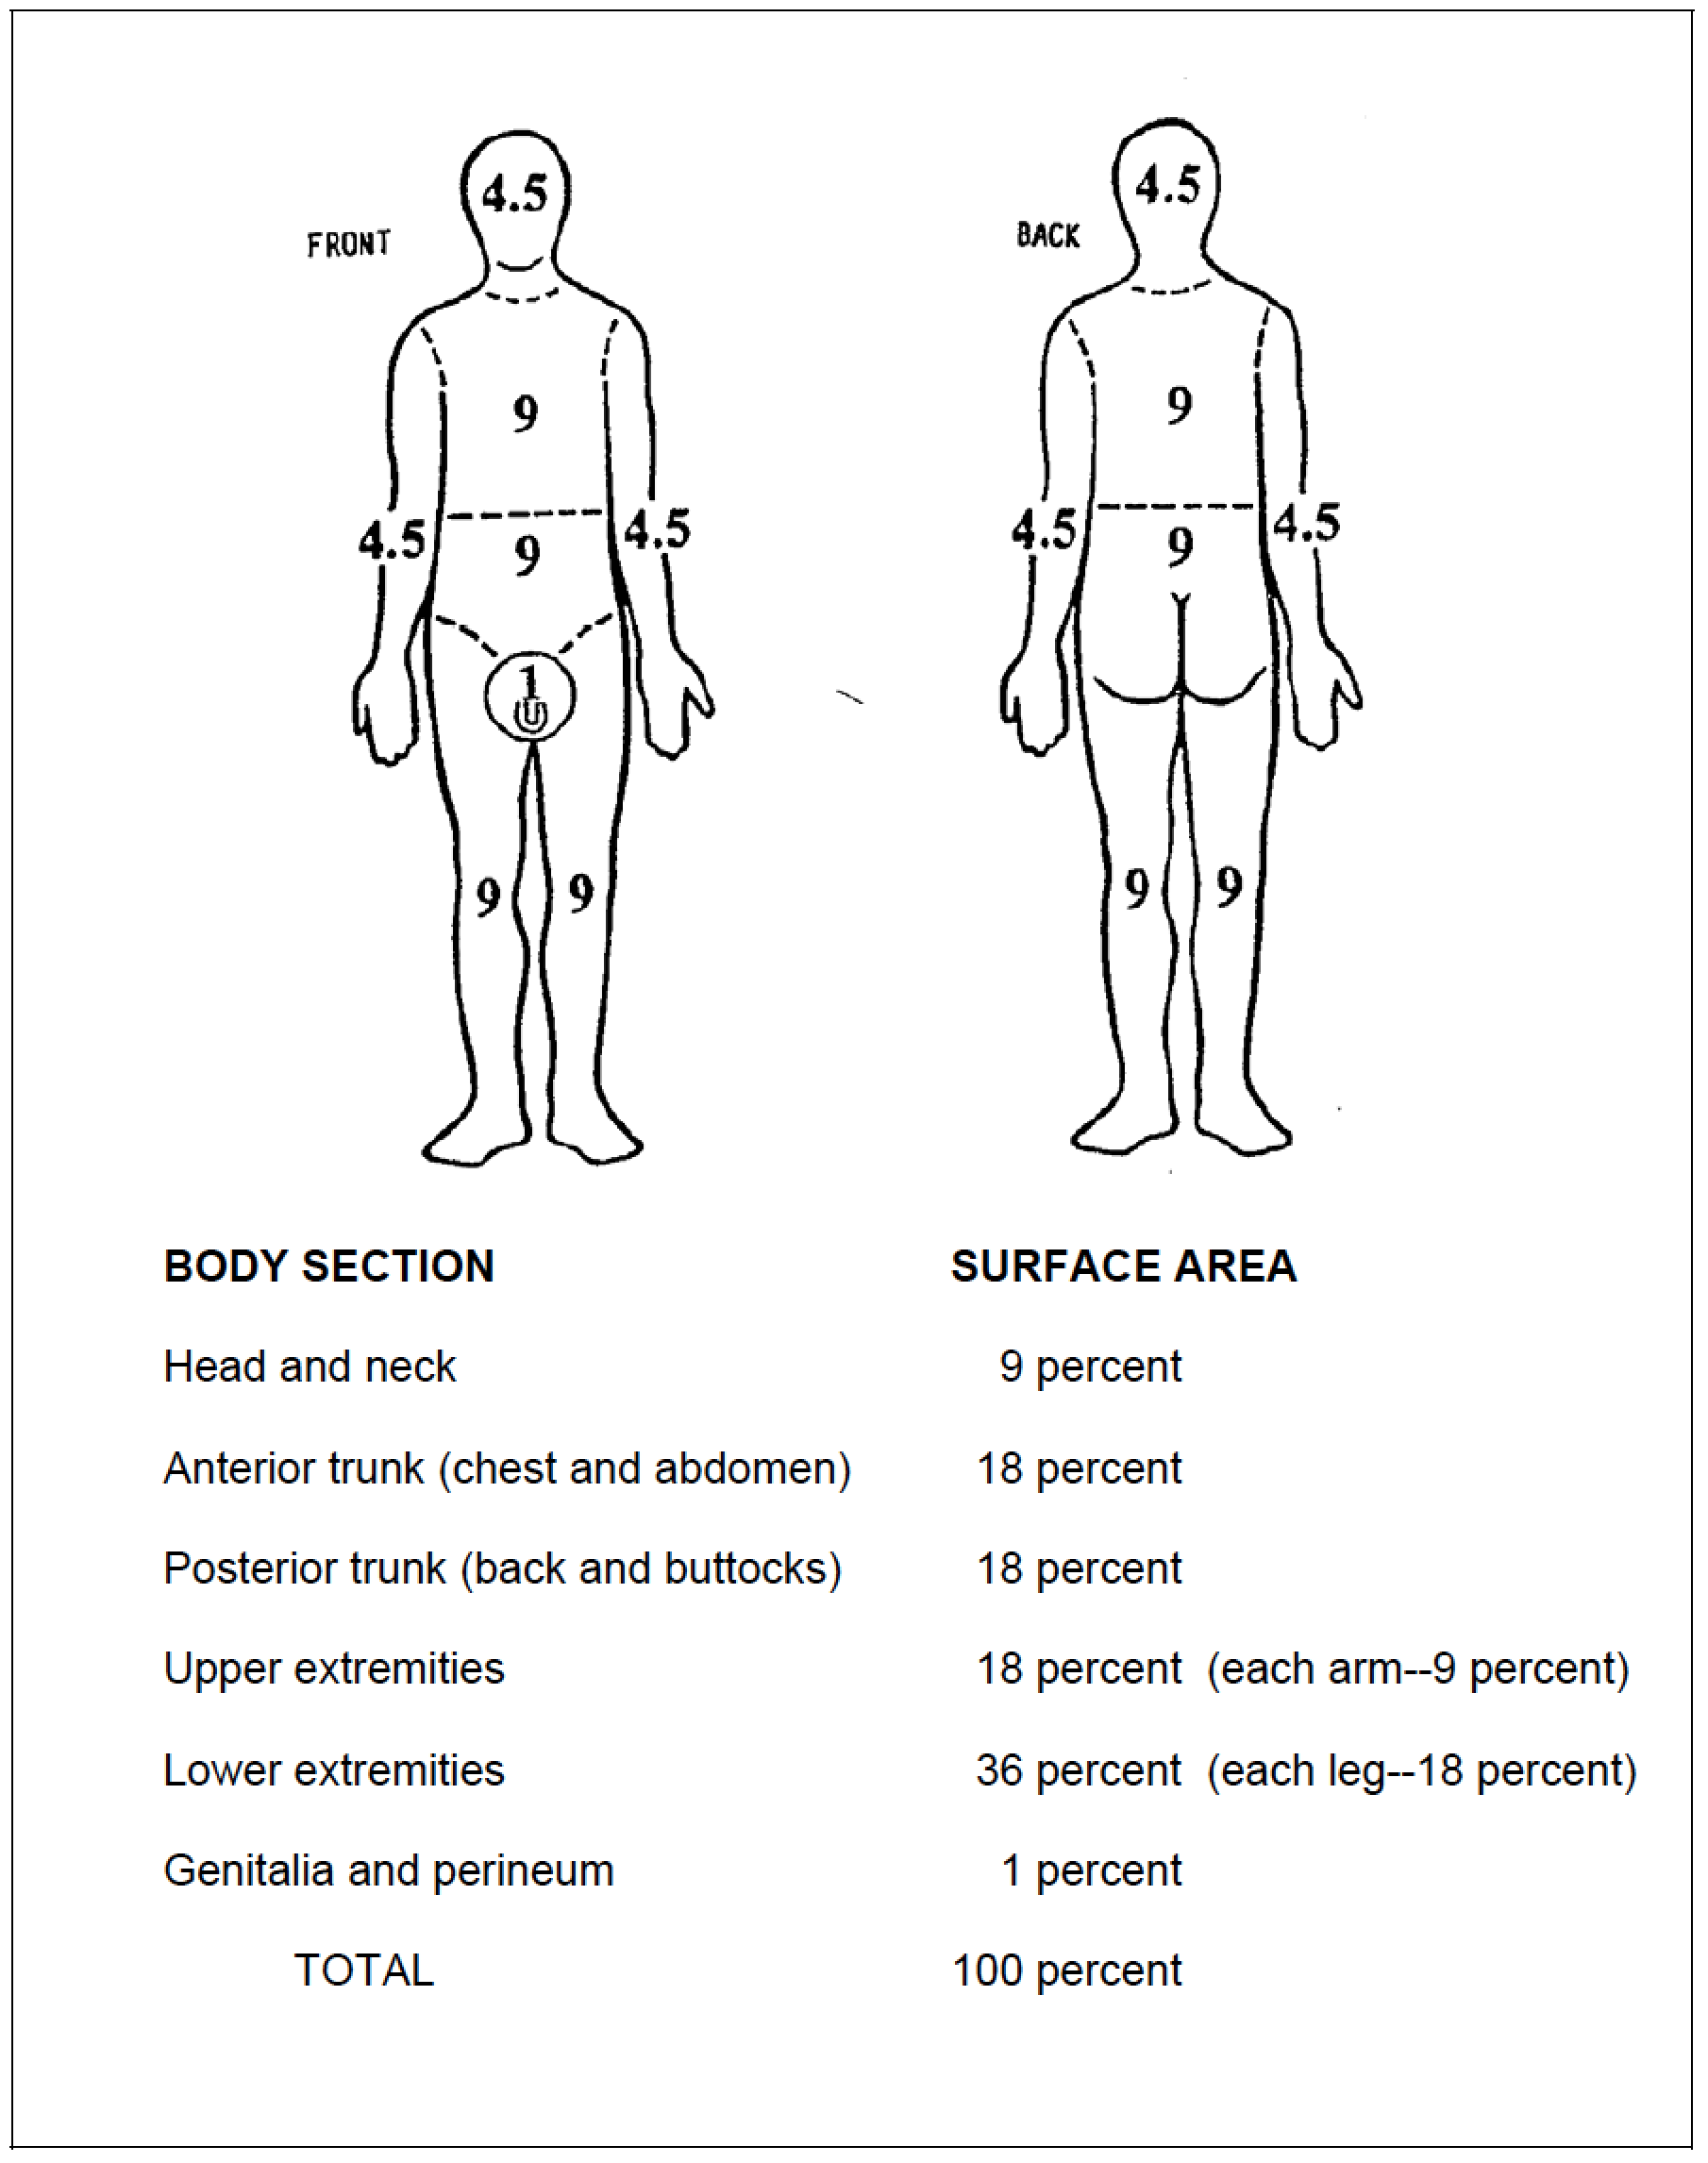 6-09. ESTIMATE THE PERCENT OF BODY SURFACE AREA BURNED | Tactical ...